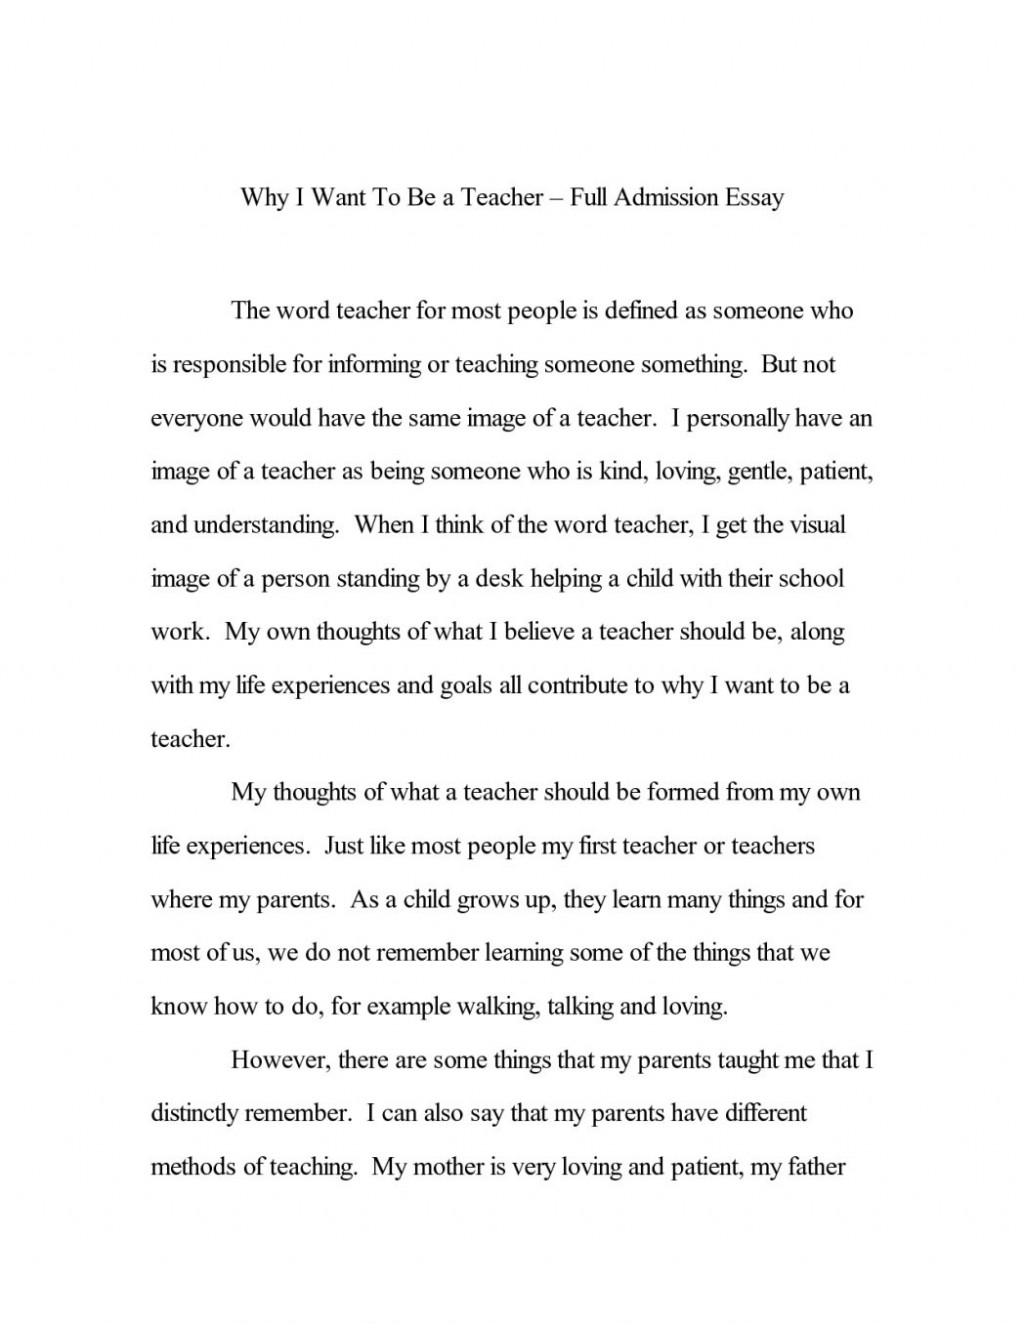 006 College Application Essays Format Cover Letter And Tips Personal Statement Ideal Vistalist Co Inten Writing 1048x1356 Beautiful Essay Admission Common App Confidential Large